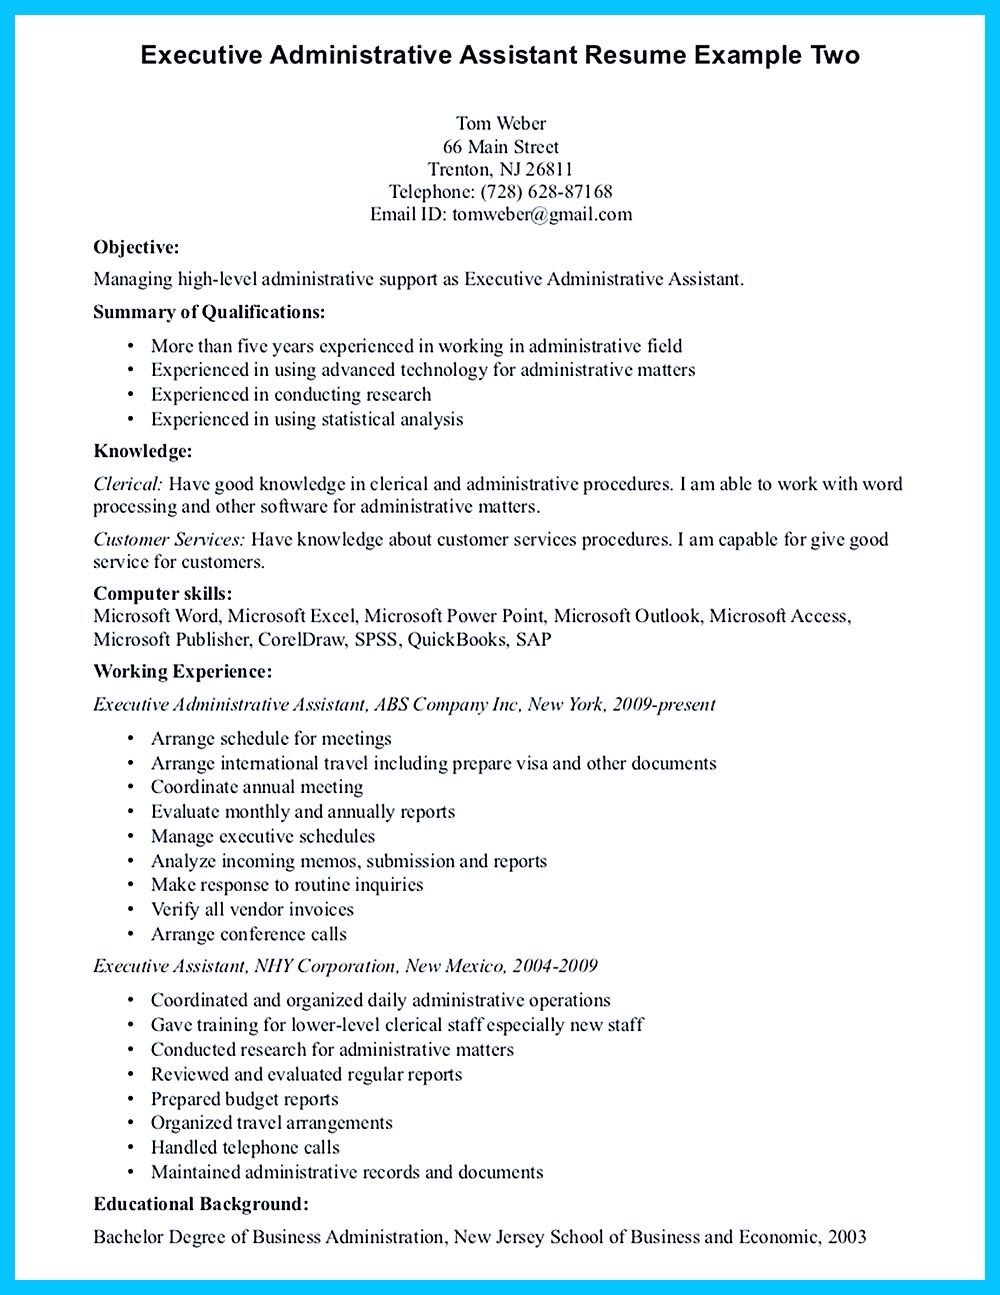 Administrative Assistant Resume Samples In Writing Entry Level Administrative Assistant Resume You Need